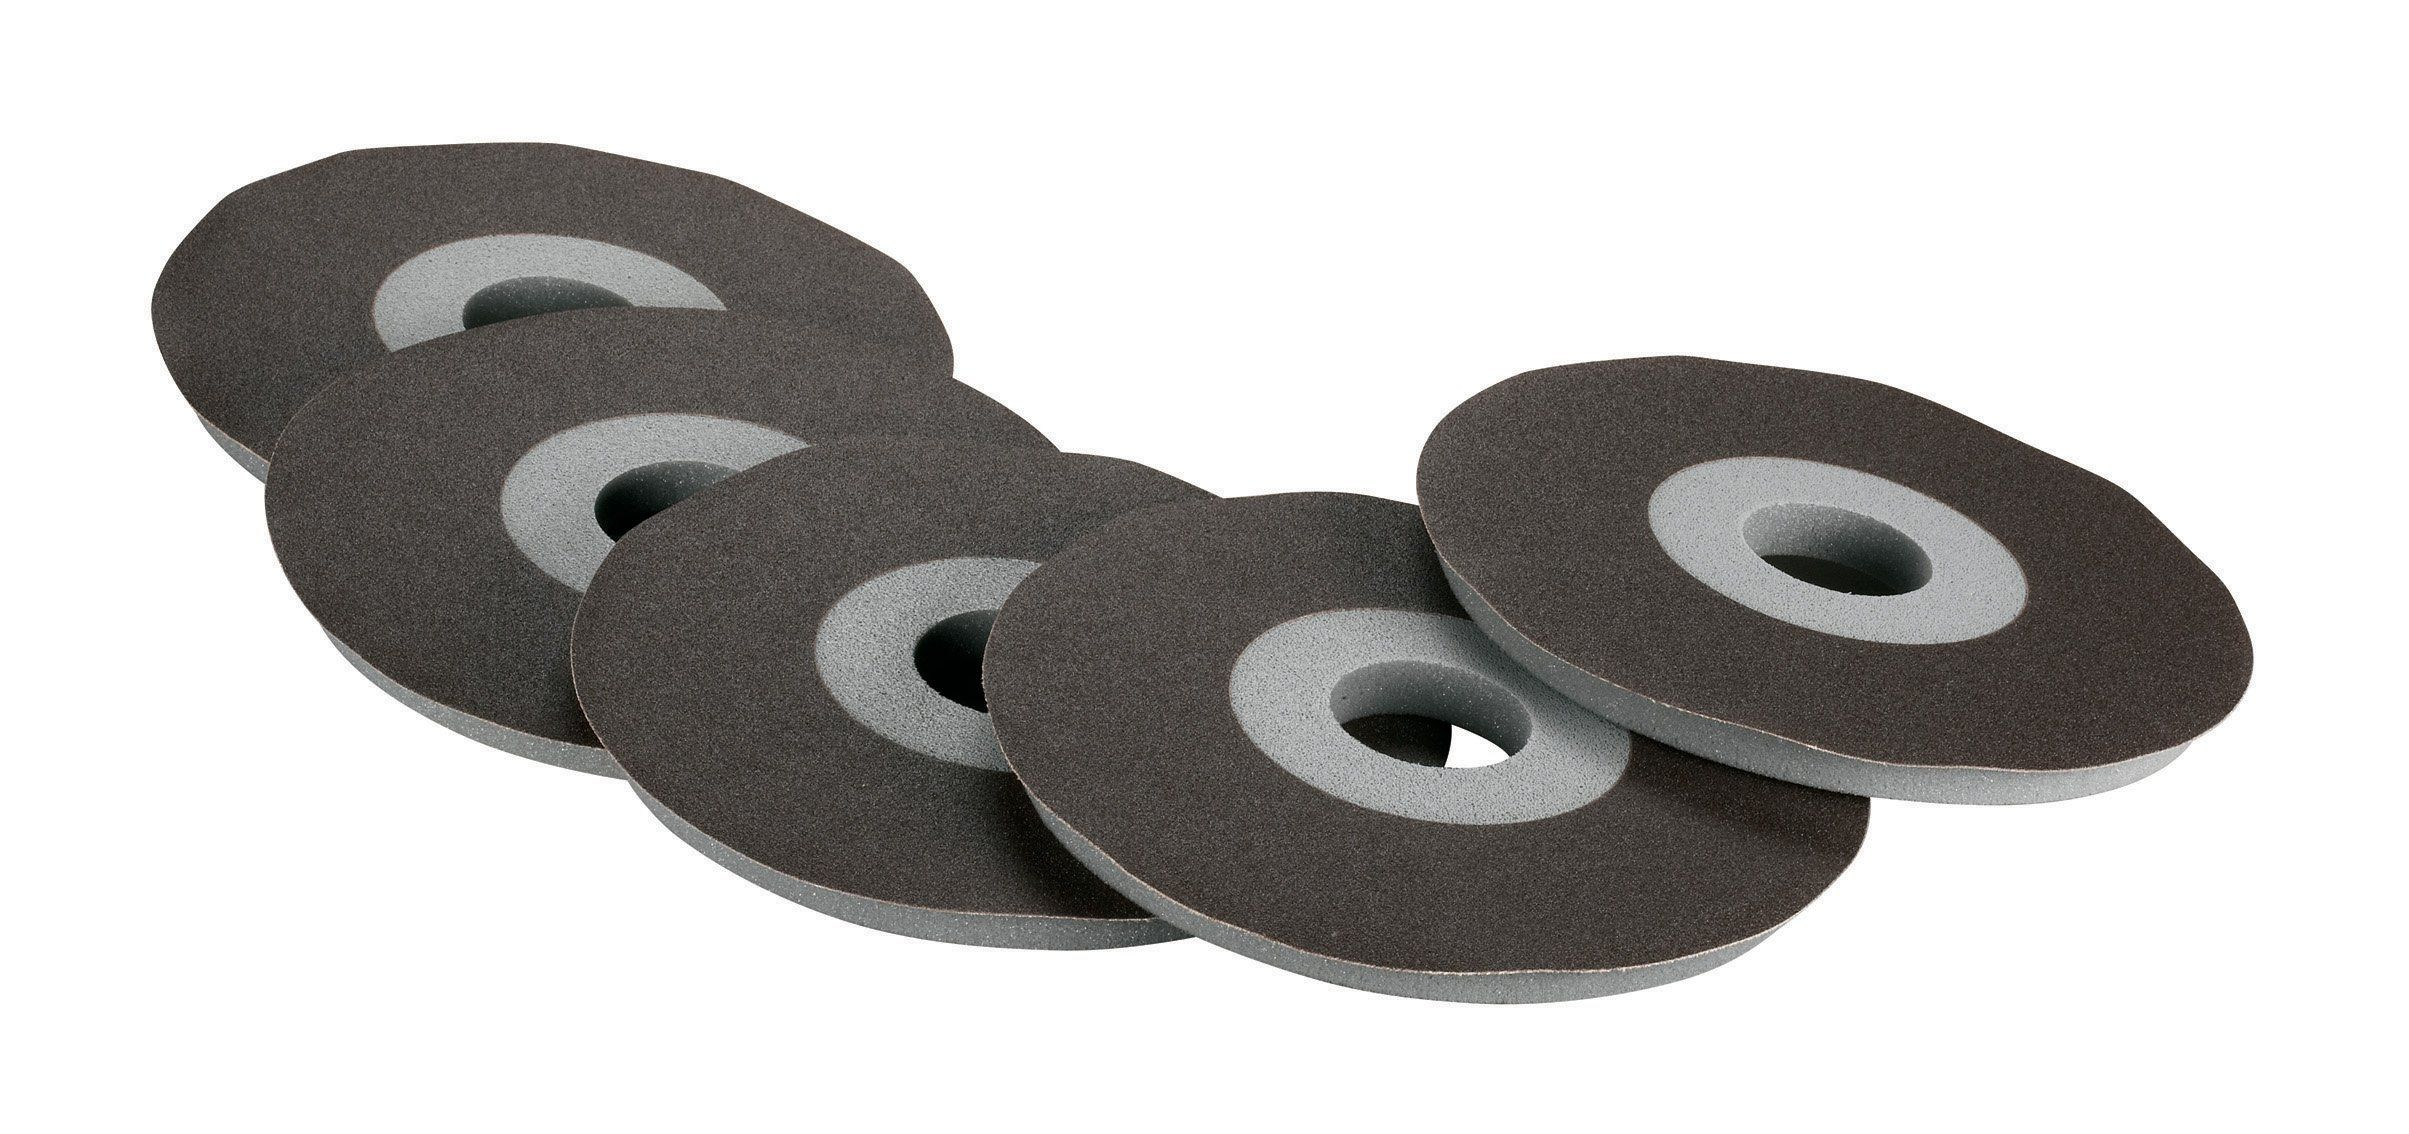 Porter Cable 77105 100 Grit Drywall Sanding Pad 5 Pack For More Information Visit Image Link This Is An Affiliate L Porter Cable Drywall Sander Sanding